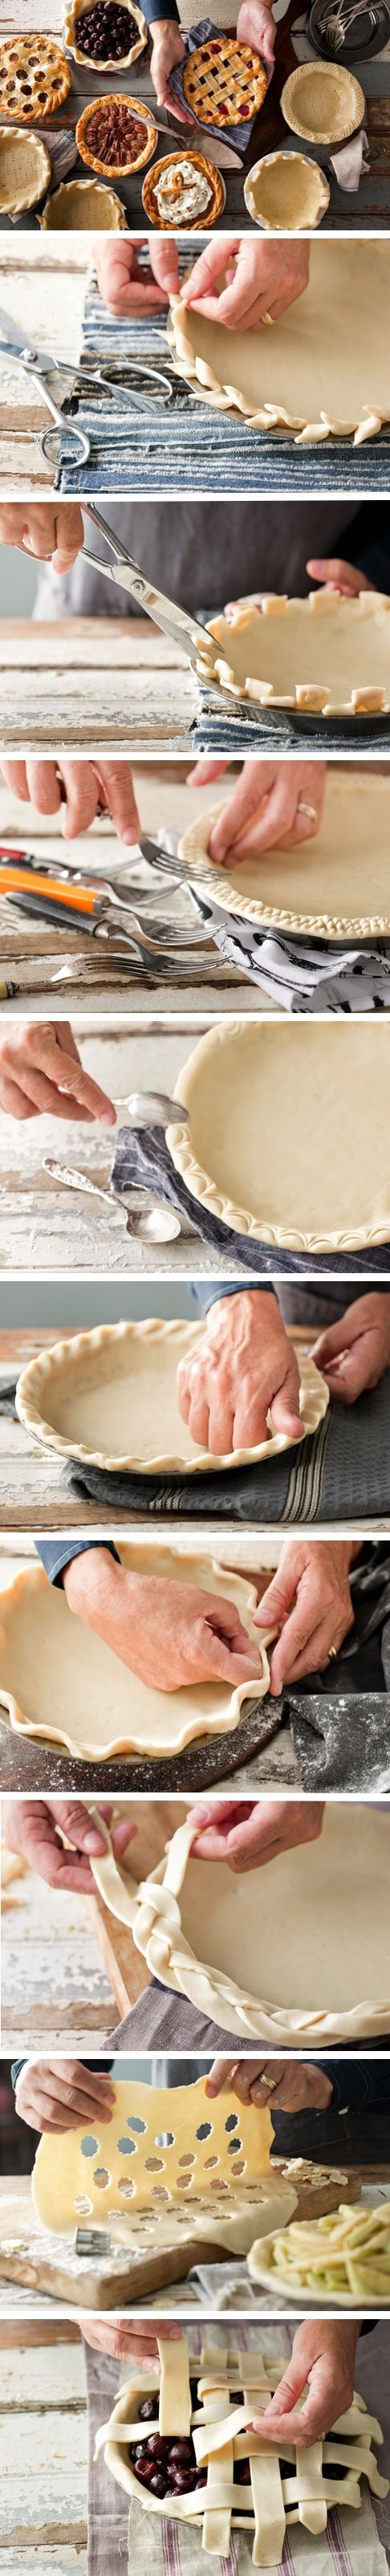 creative fall recipes - creative pie crusts